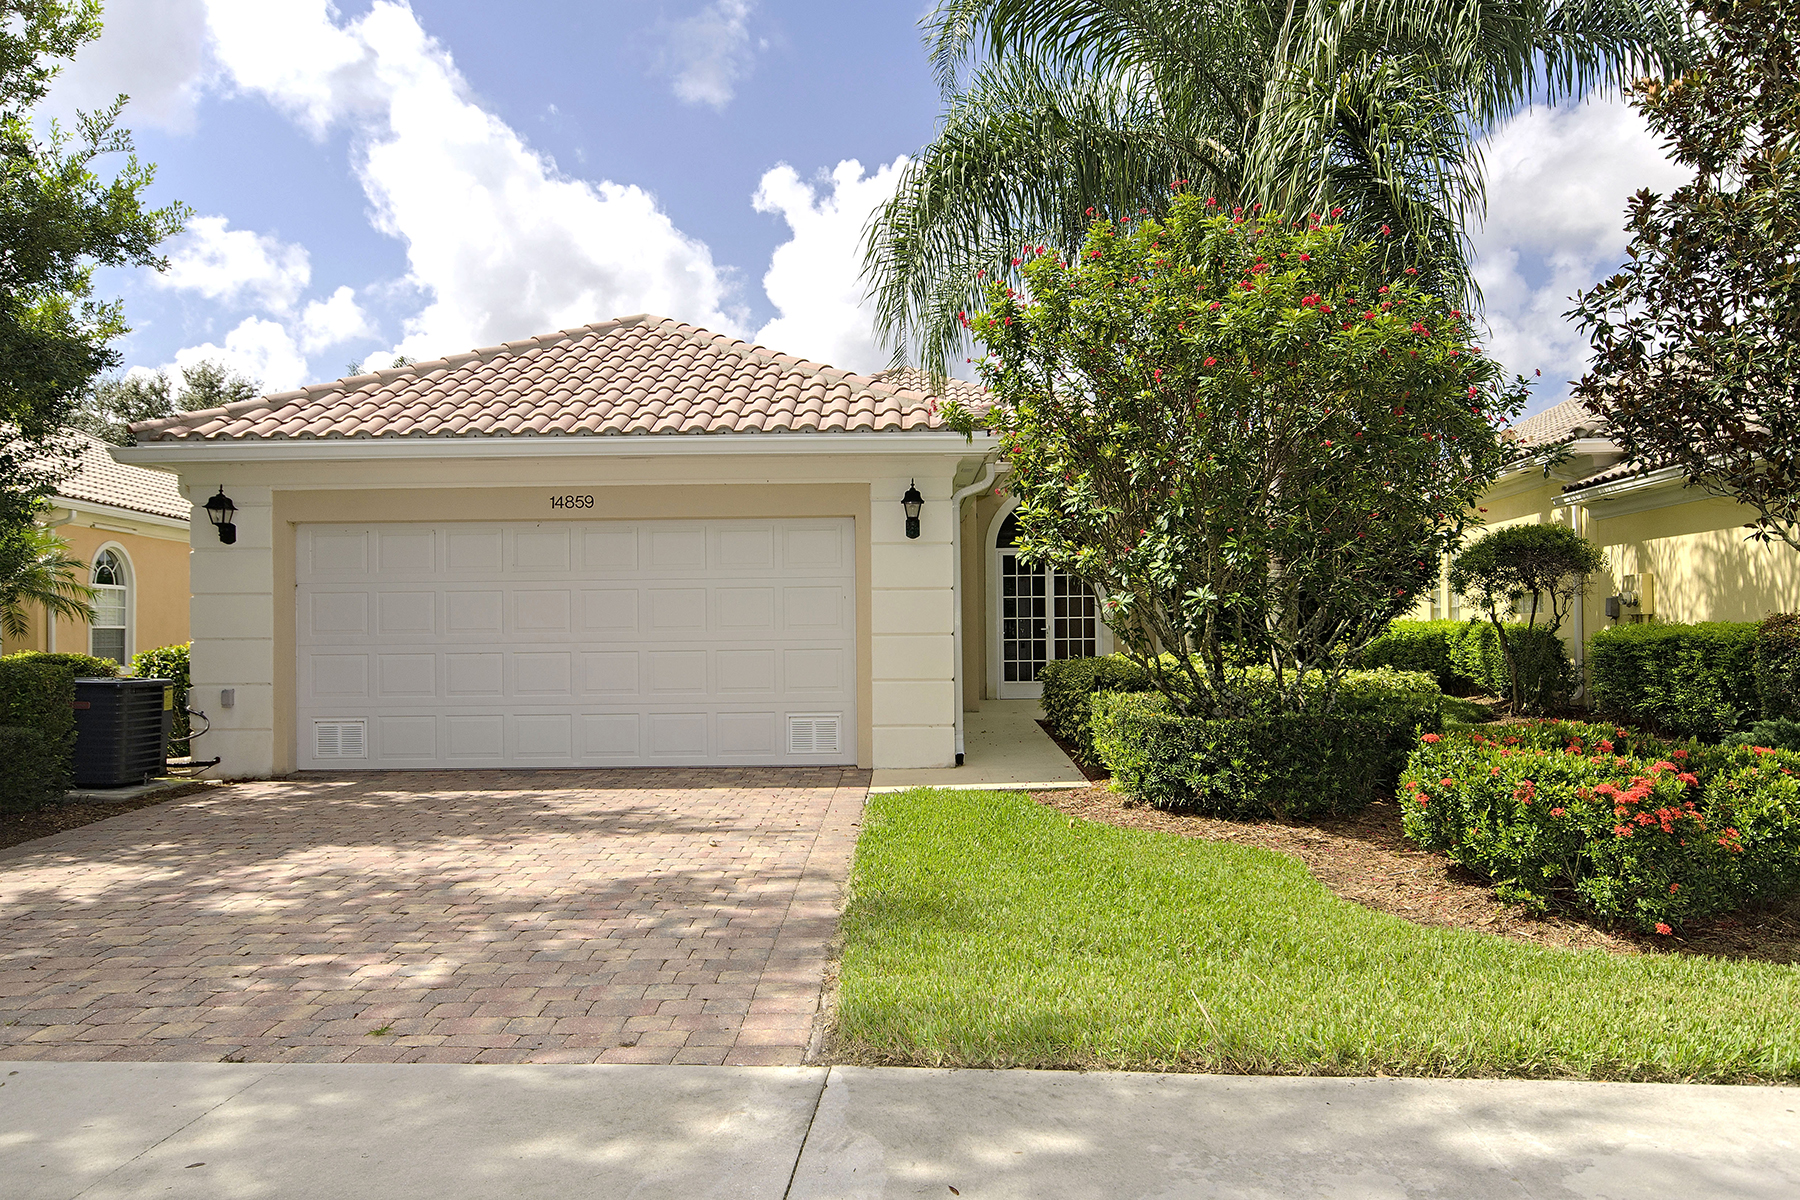 Single Family Home for Sale at SAN REMO 14859 Donatello Ct, Bonita Springs, Florida 34135 United States